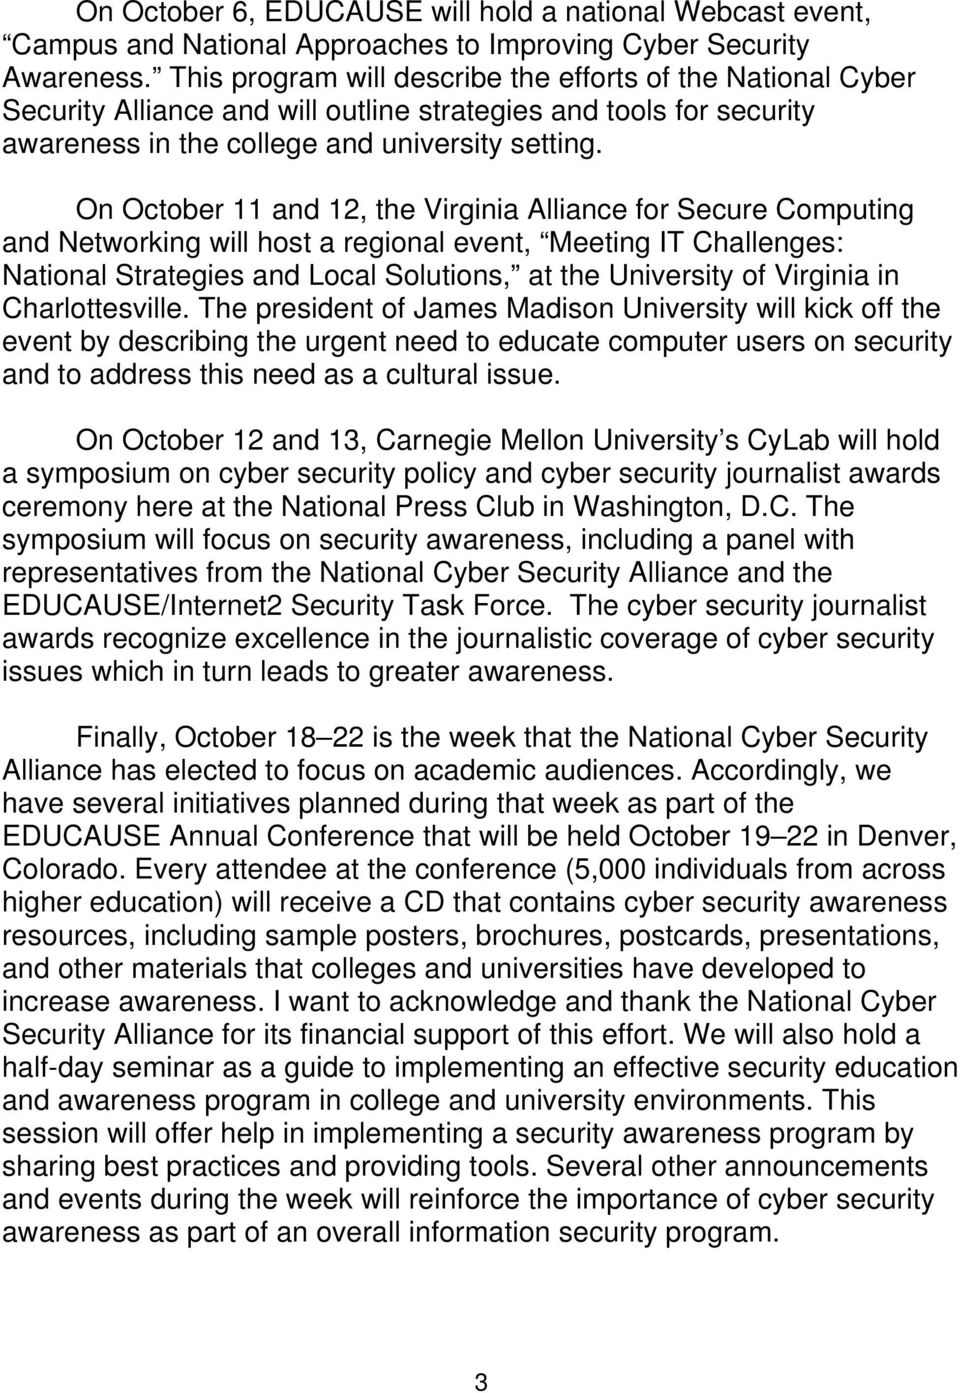 On October 11 and 12, the Virginia Alliance for Secure Computing and Networking will host a regional event, Meeting IT Challenges: National Strategies and Local Solutions, at the University of